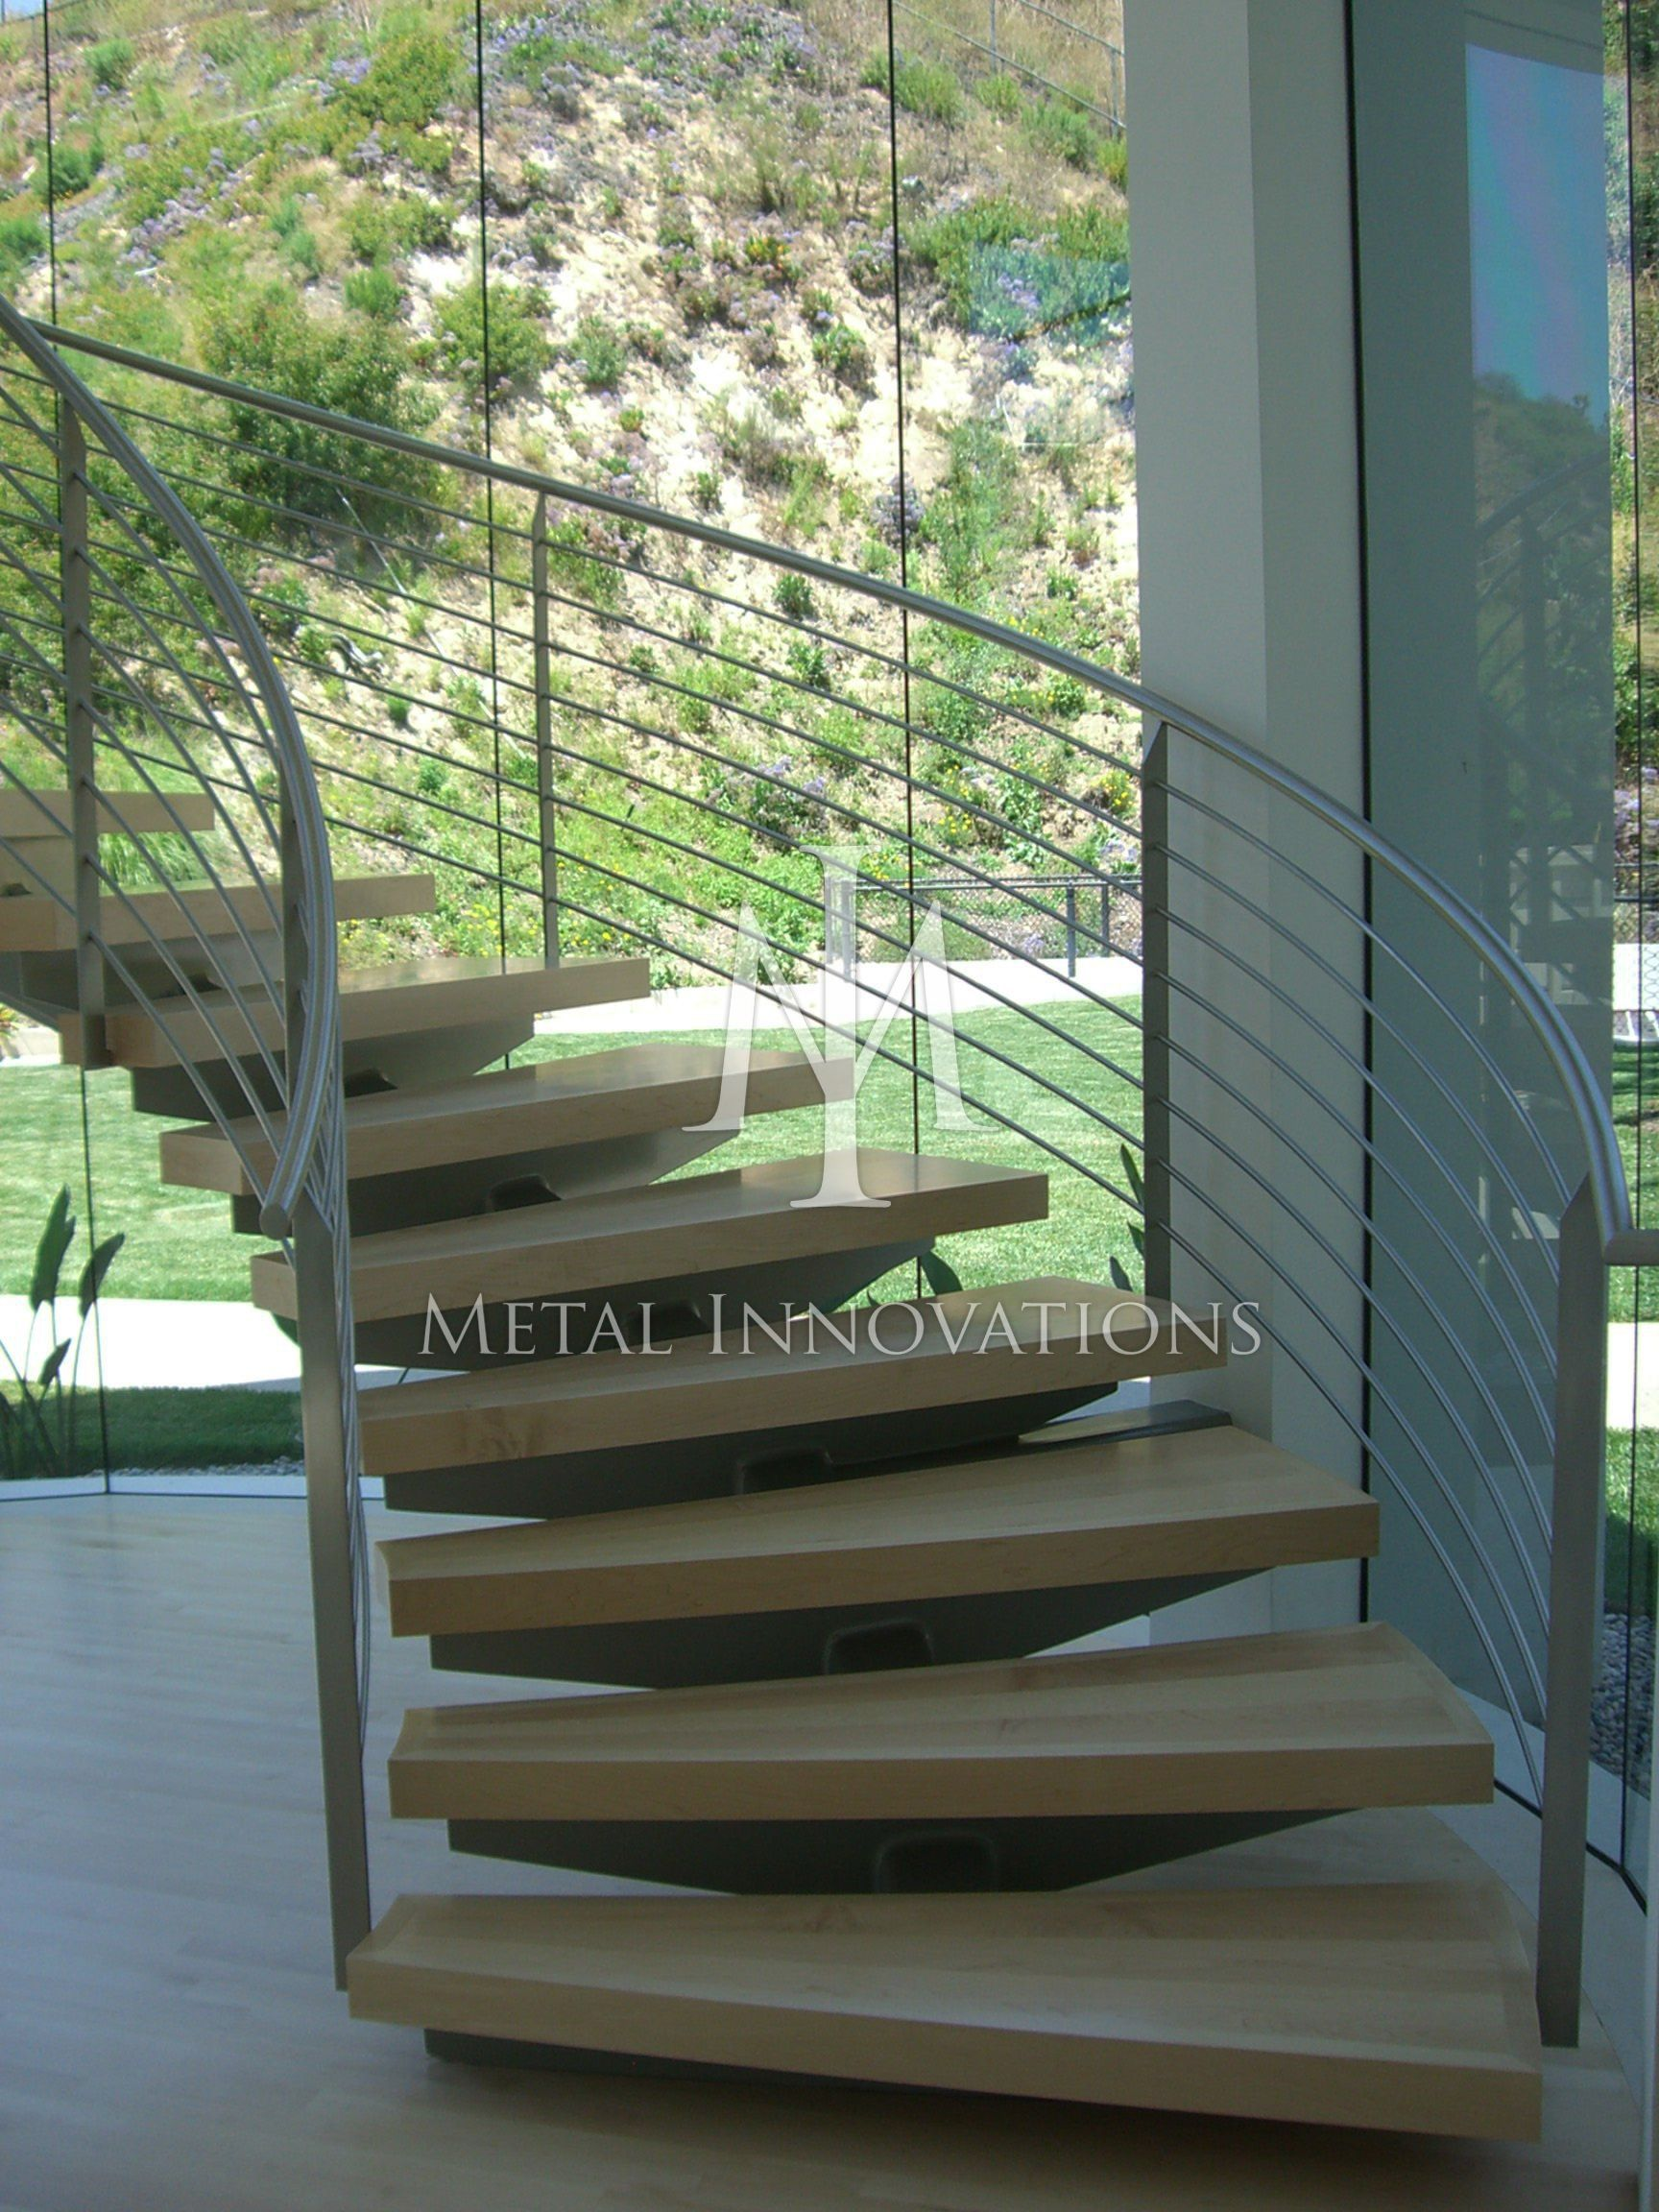 hight resolution of stair rails modern rails contemporary rails stainless steel rails aluminum rails cable rails glass rails wire rails modern balusters gates fences